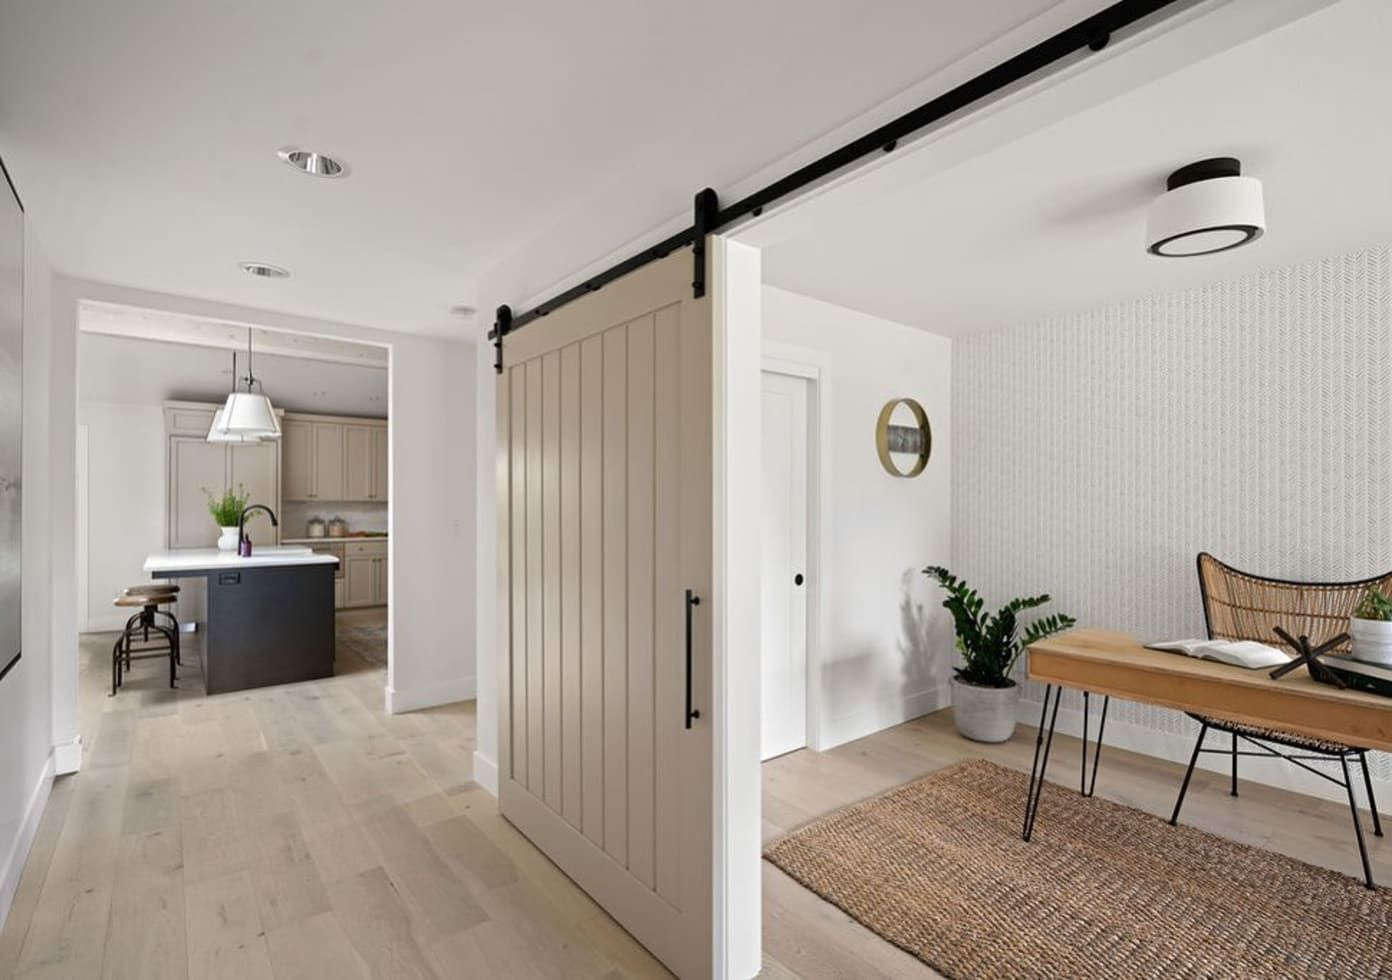 12 Fresh Door Alternatives for Making Your Space Shine in